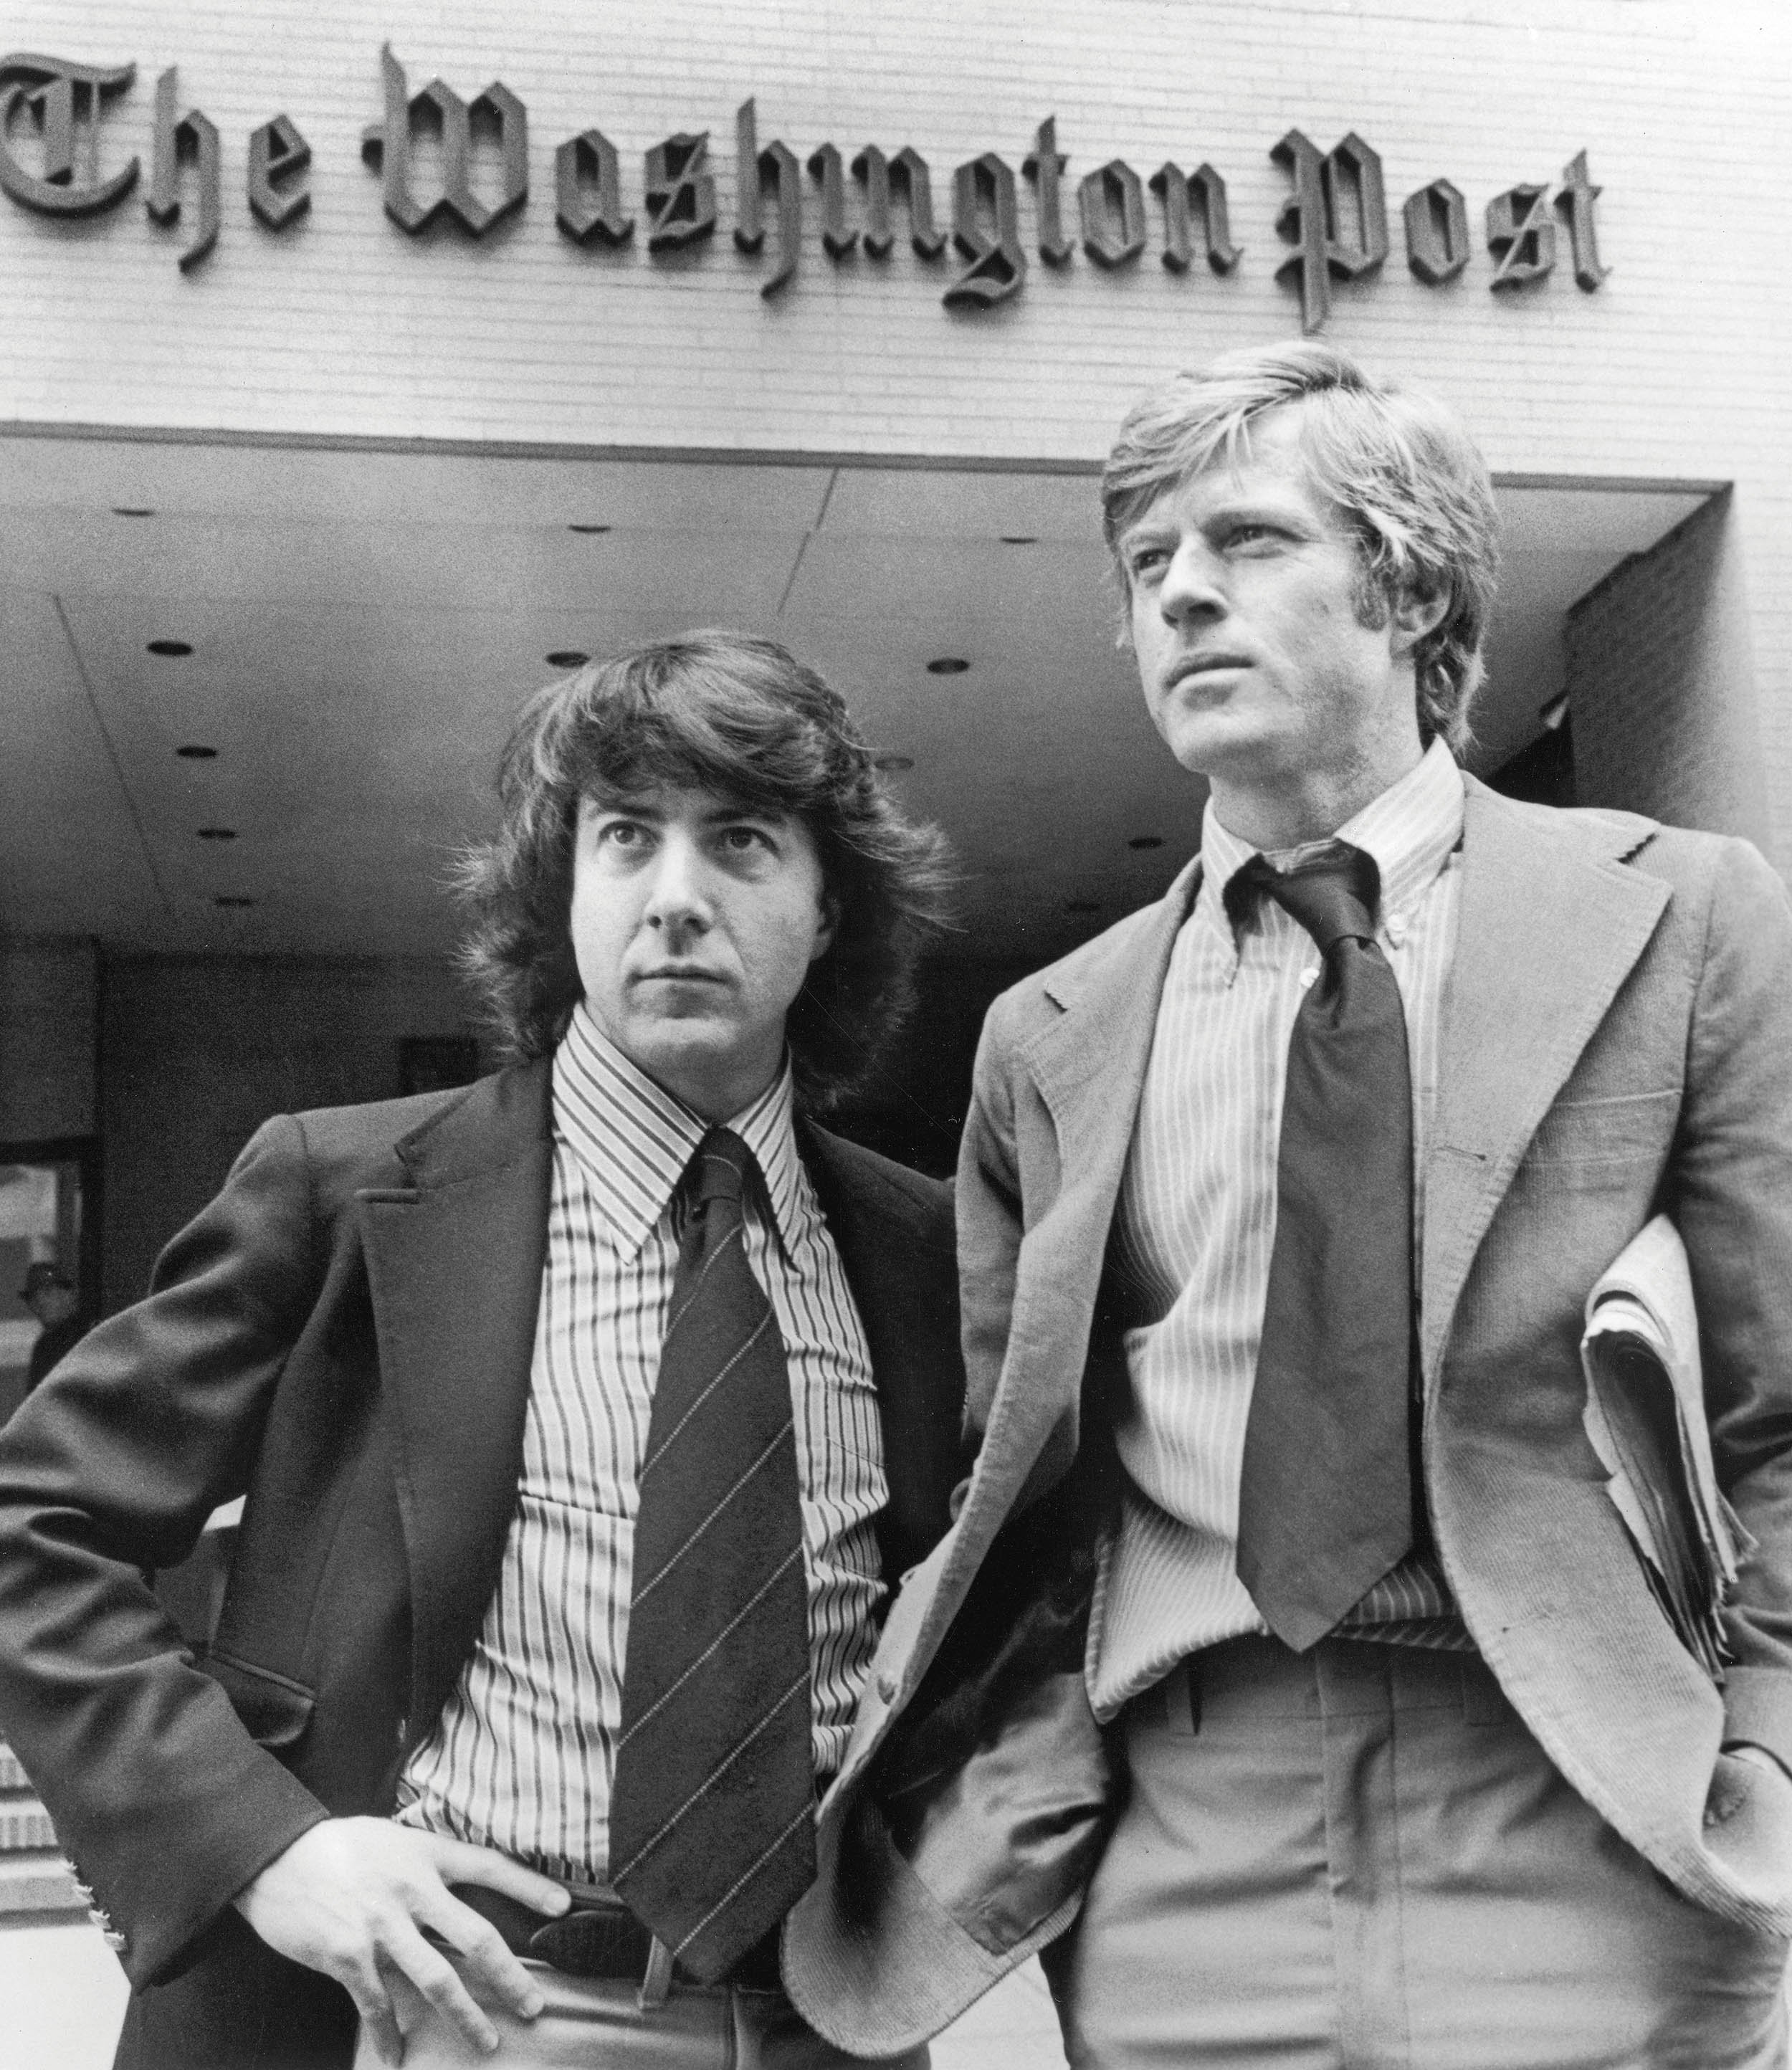 The Eerie Similarities Between Alleged Trump Scandals and 'All the President's Men'